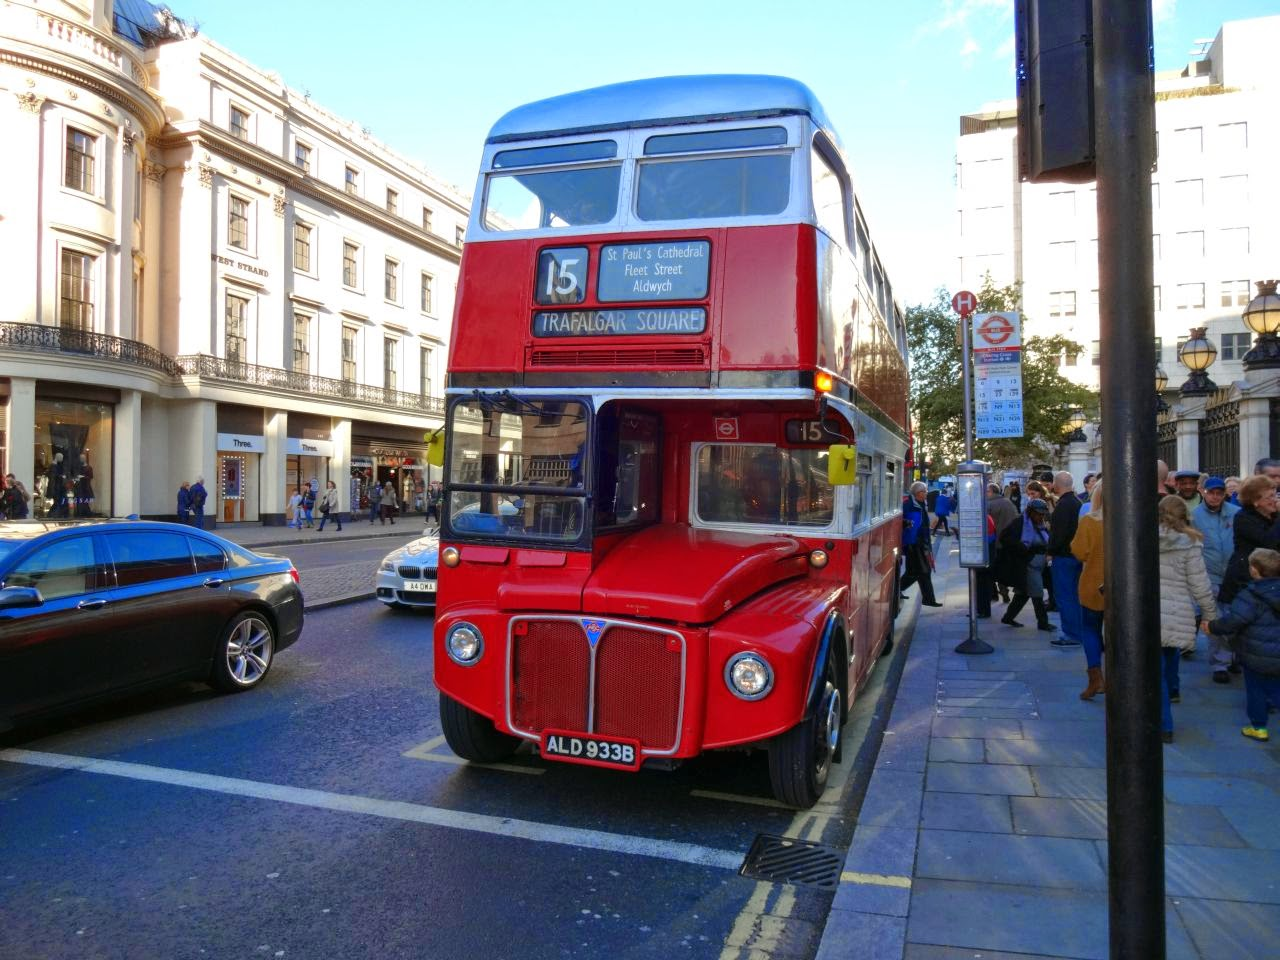 A Heritage RouteMaster